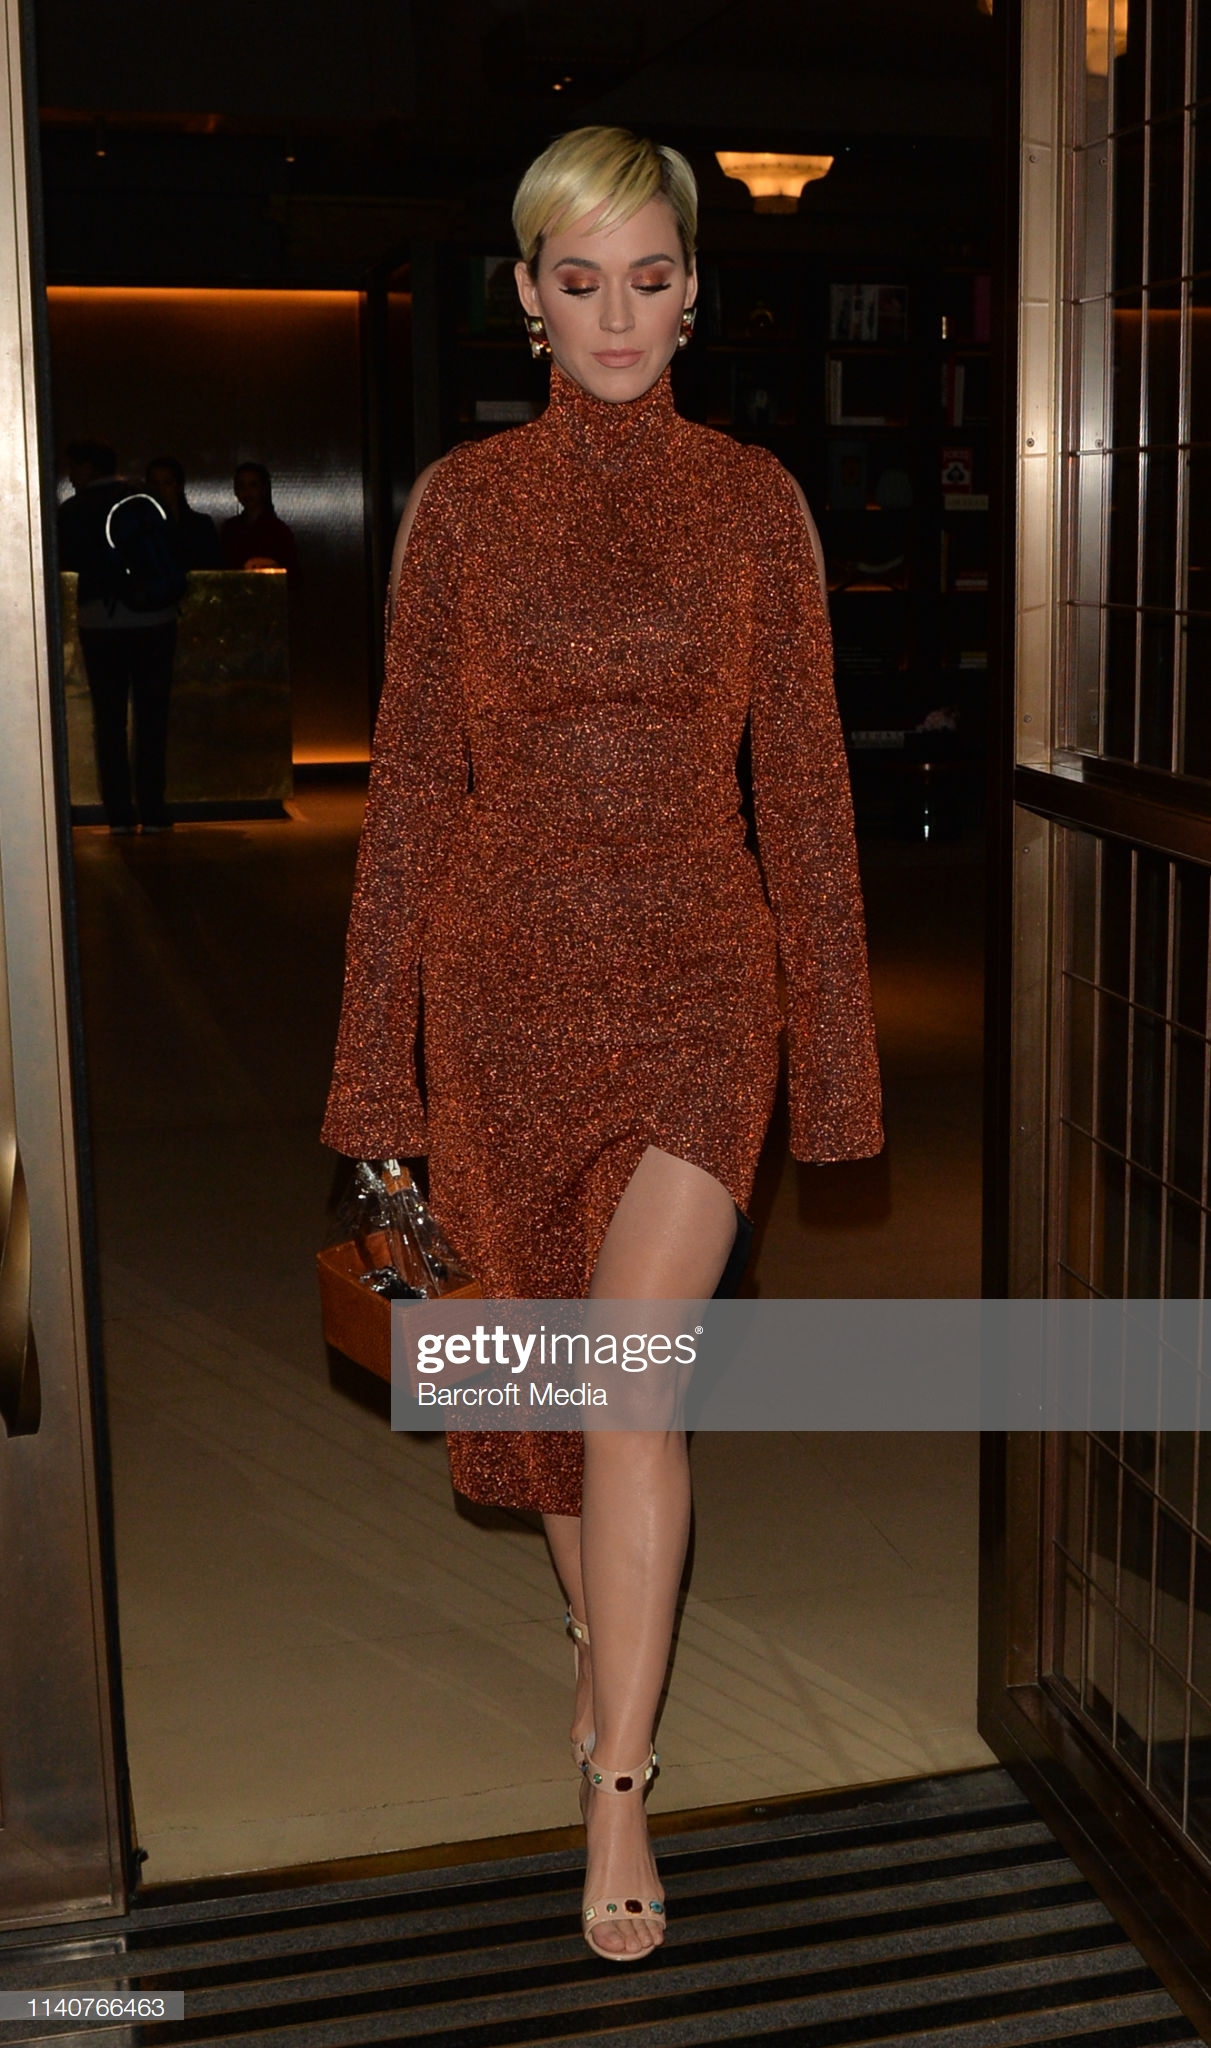 gettyimages-1140766463-2048x2048.jpg